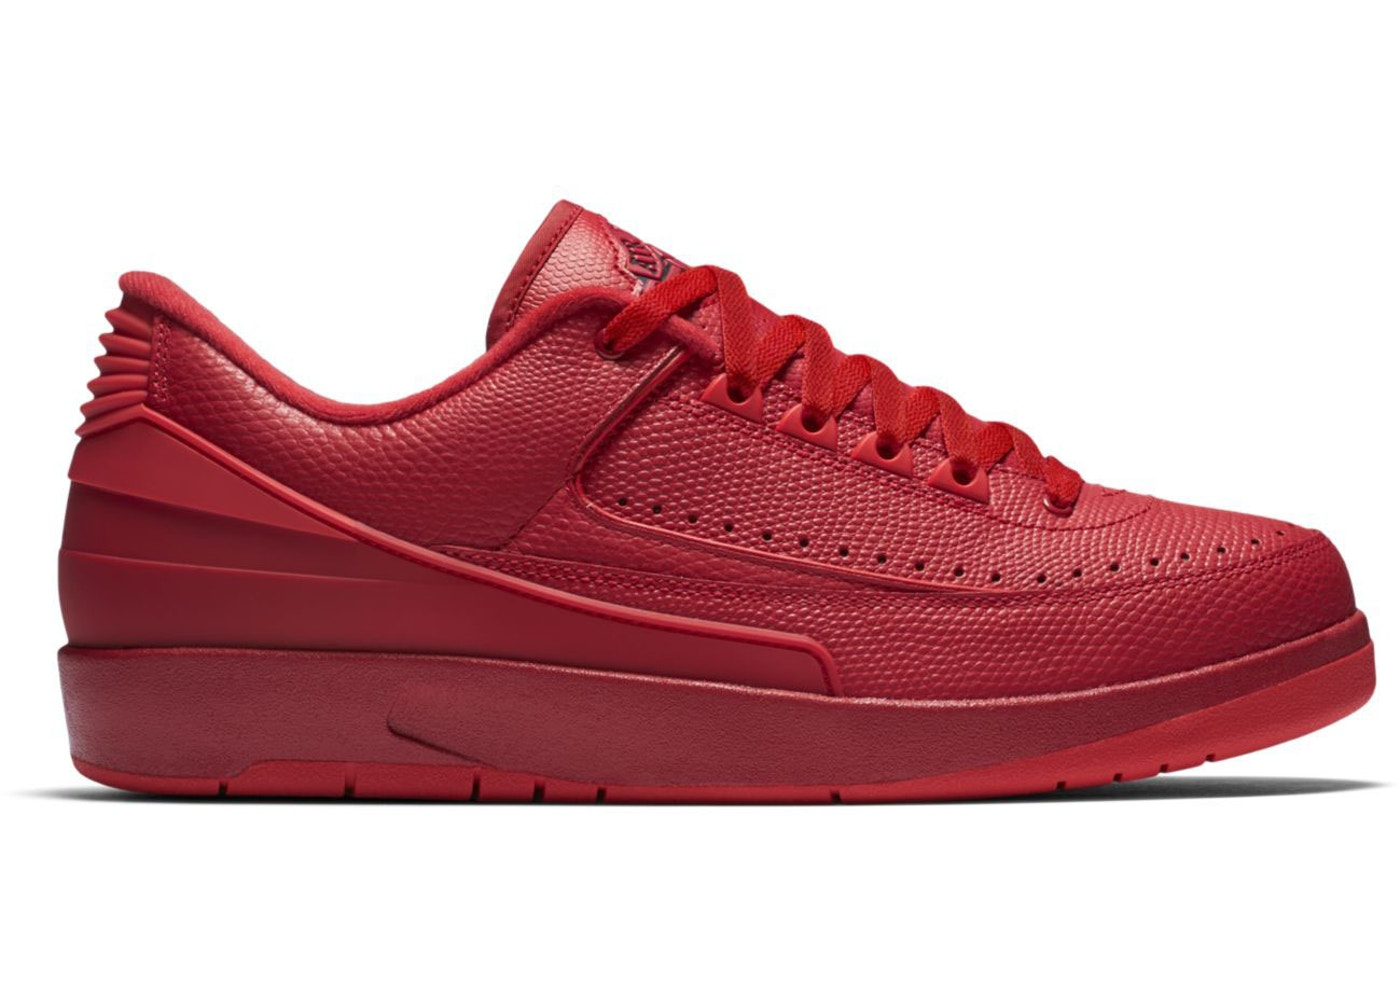 ec644e1efcff0e Jordan 2 Retro Low Gym Red - 832819-606